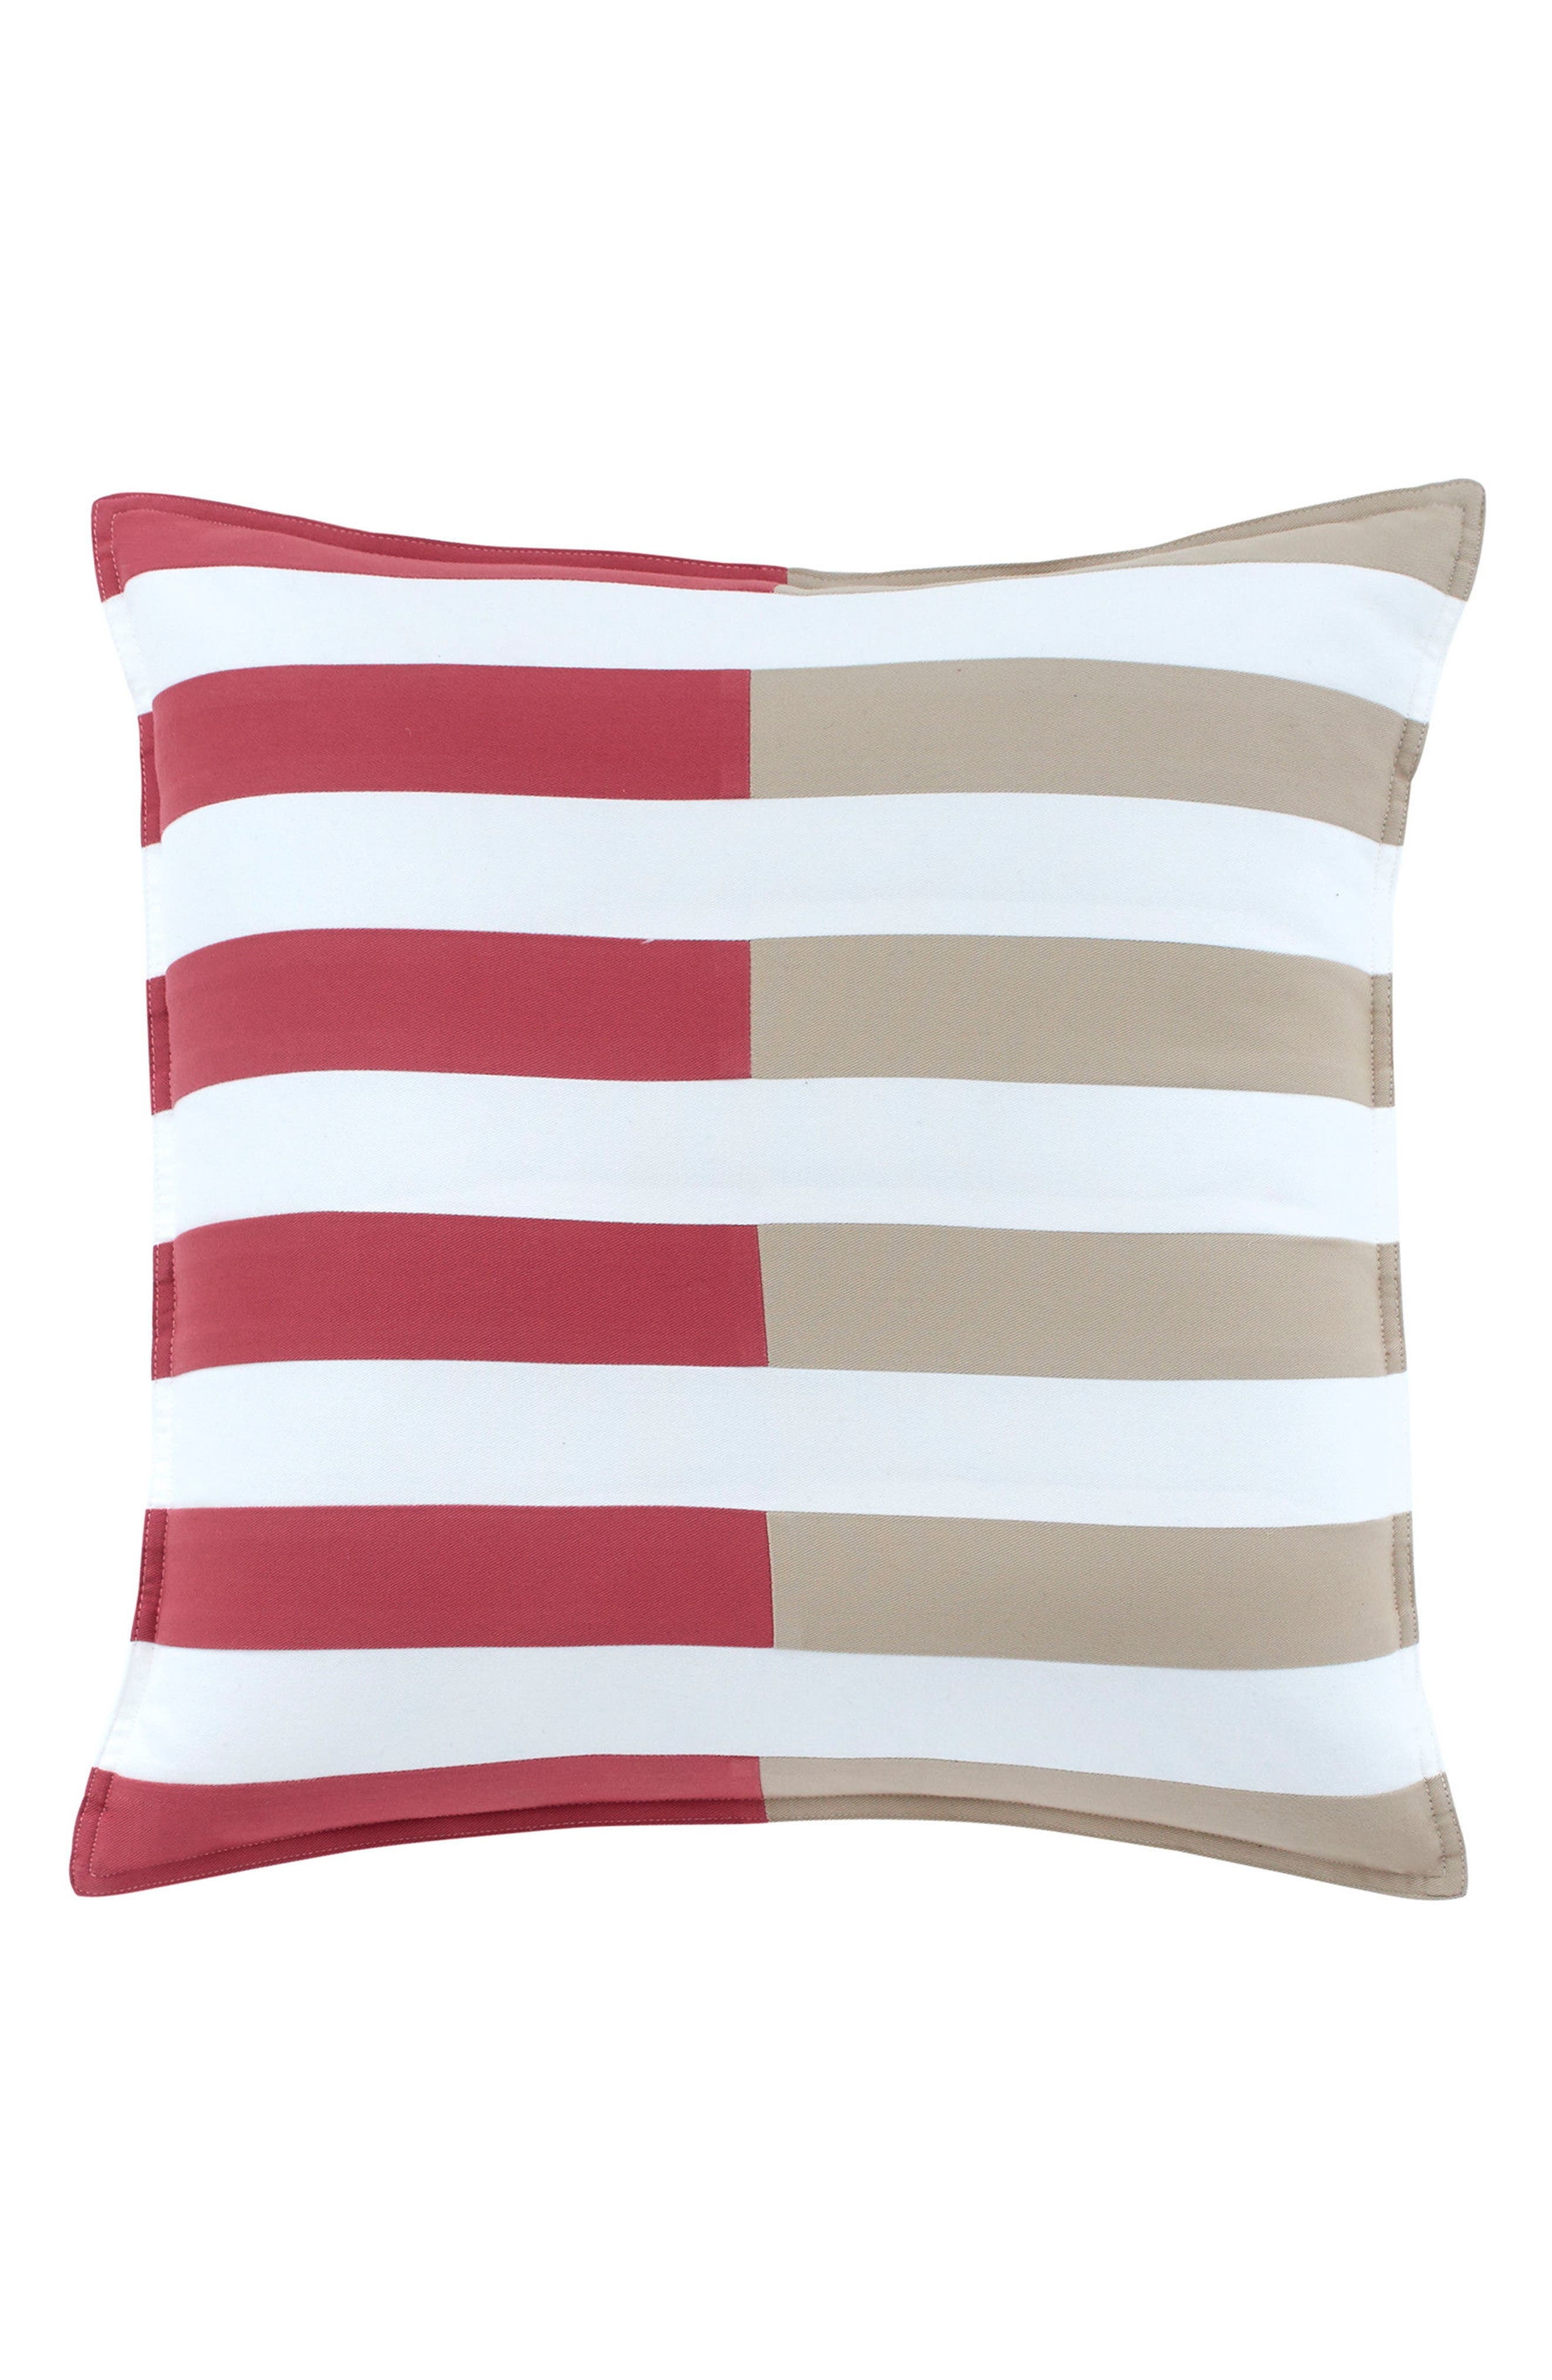 Skipjack Chino Pieced Accent Pillow,                             Main thumbnail 1, color,                             Charleston Red/ Humus/ White